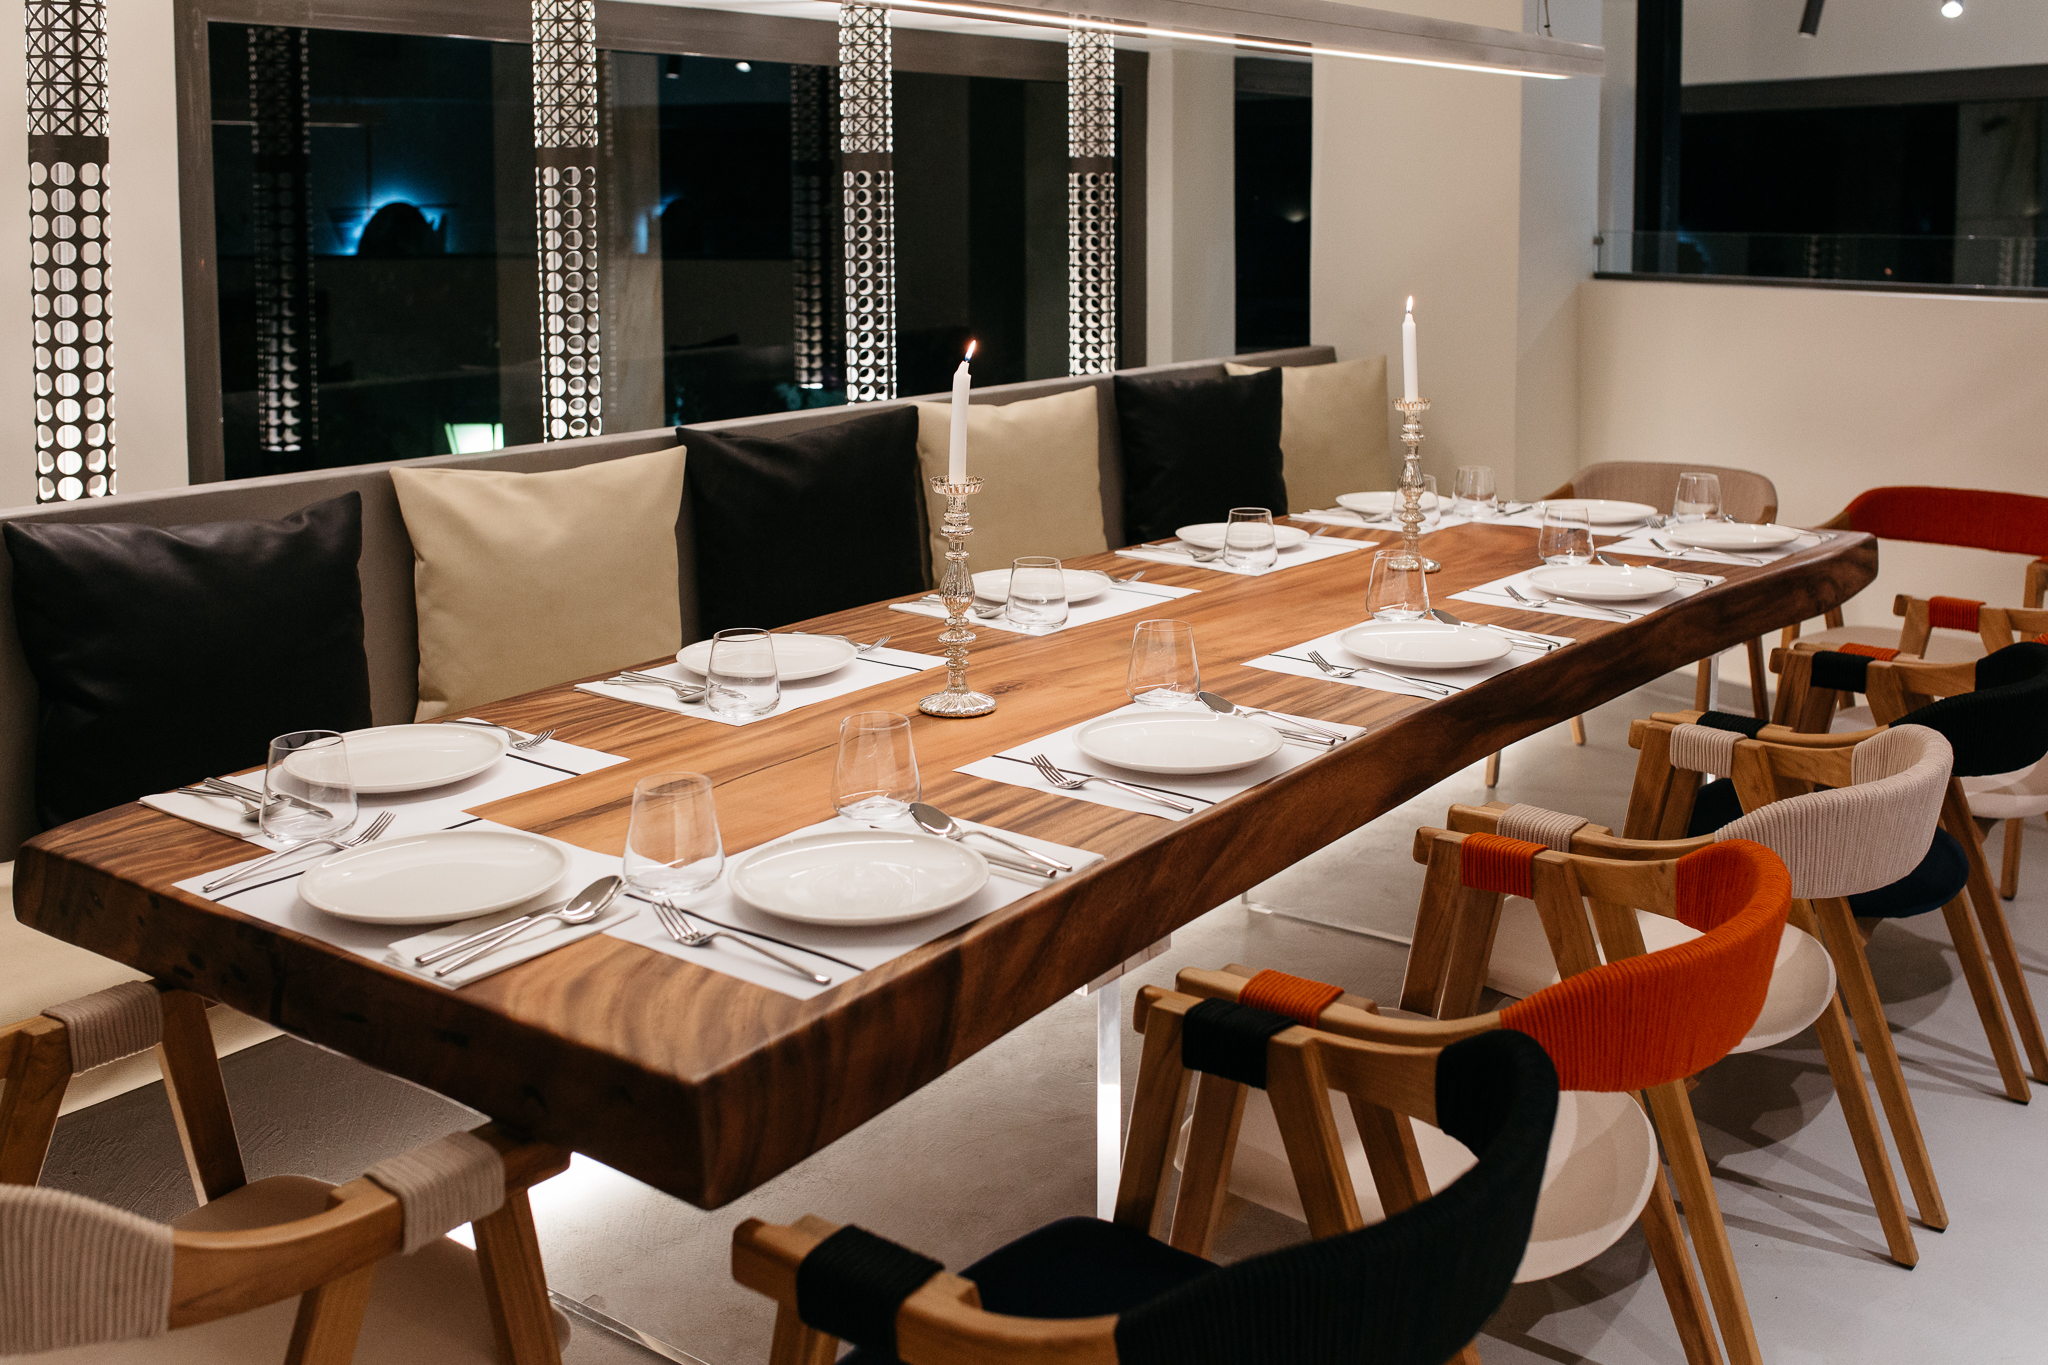 """333ChefsWorkshop """"333 & Chef's Workshop"""": a new restaurant opening in the capital"""